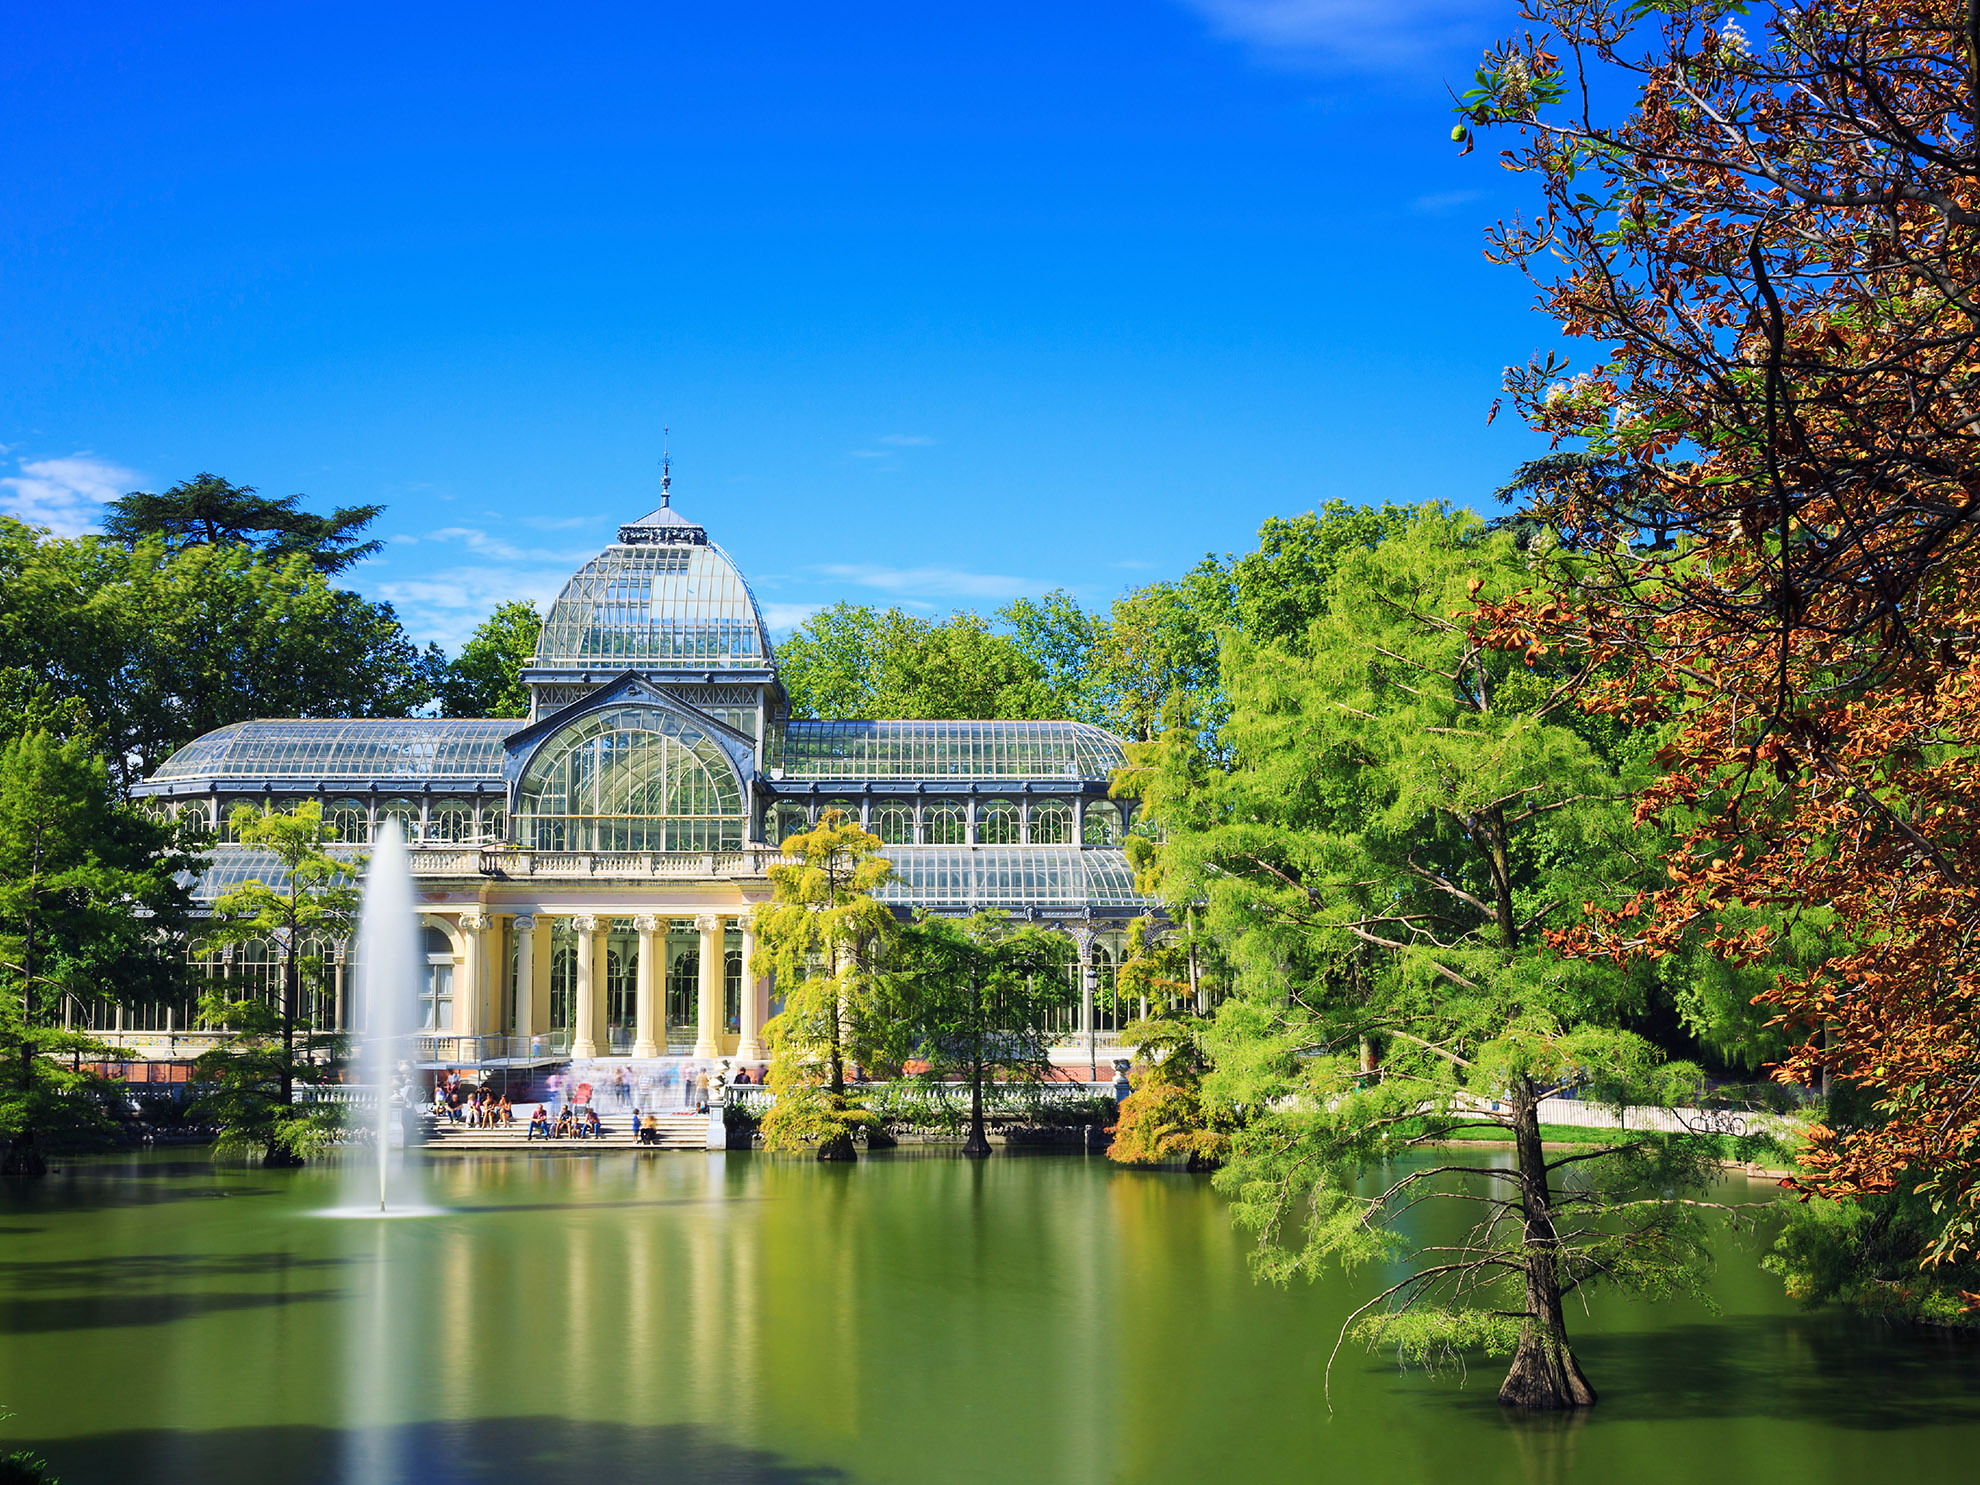 Parque del Retiro - Madrid, Spain